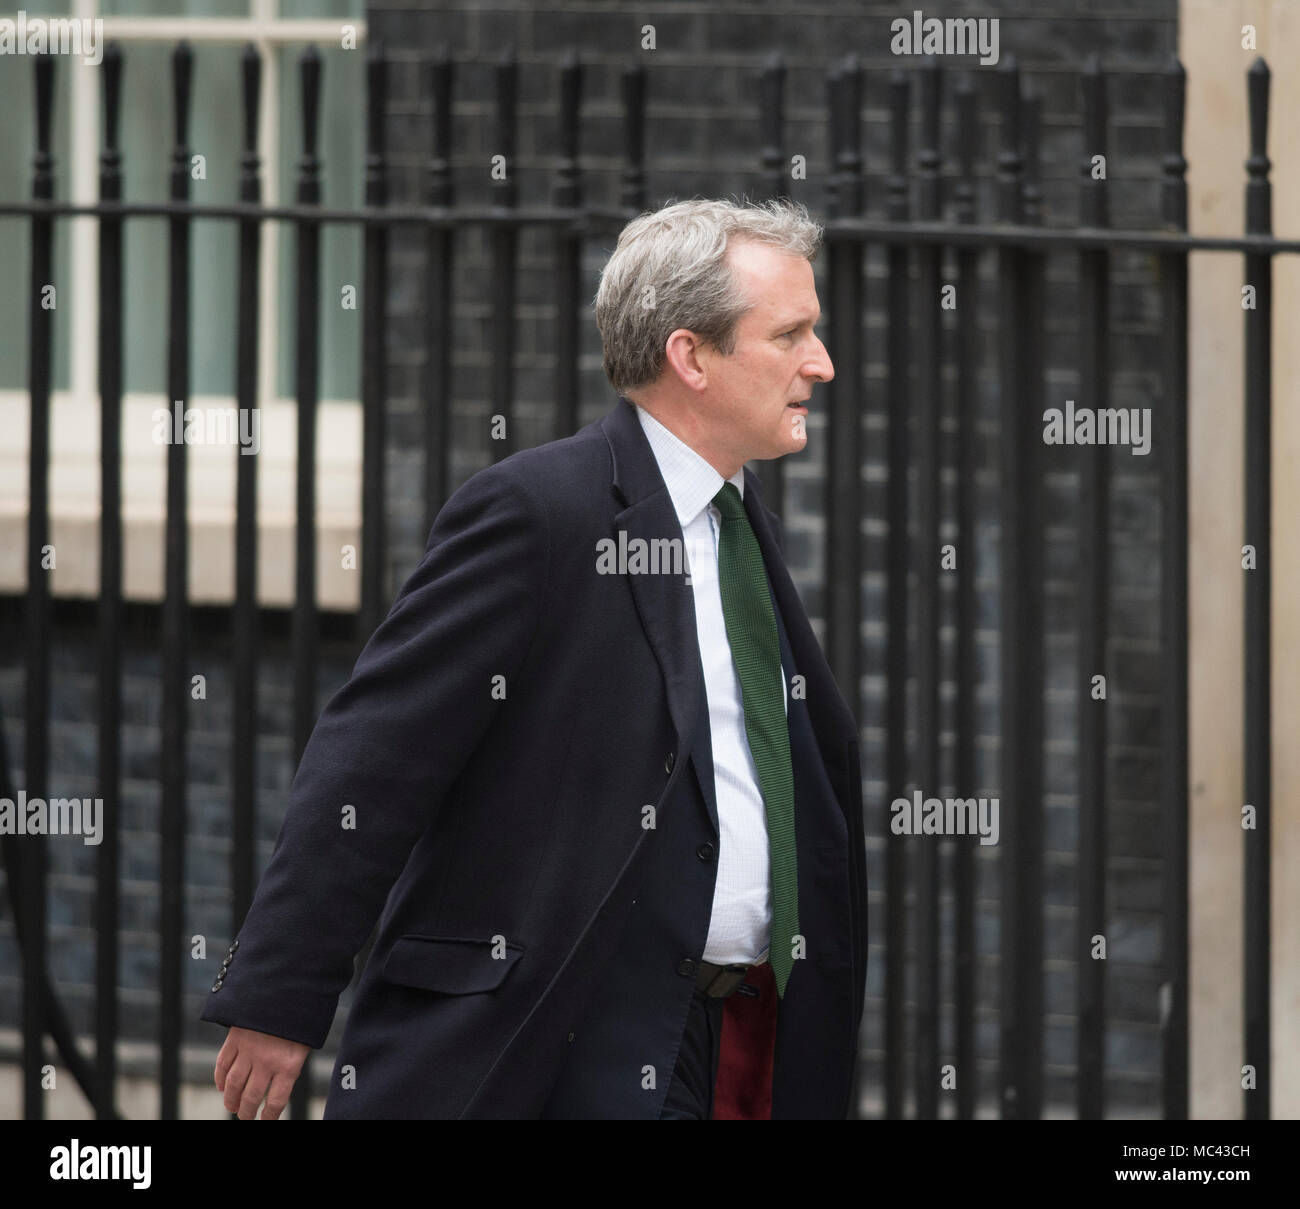 Downing Street, London, UK. 12 April 2018. Government ministers called to Downing Street from recess for a special cabinet meeting discussing response to chemical attack in Syria. Damian Hinds, Secretary of State for Education arrives. Credit: Malcolm Park/Alamy Live News. - Stock Image